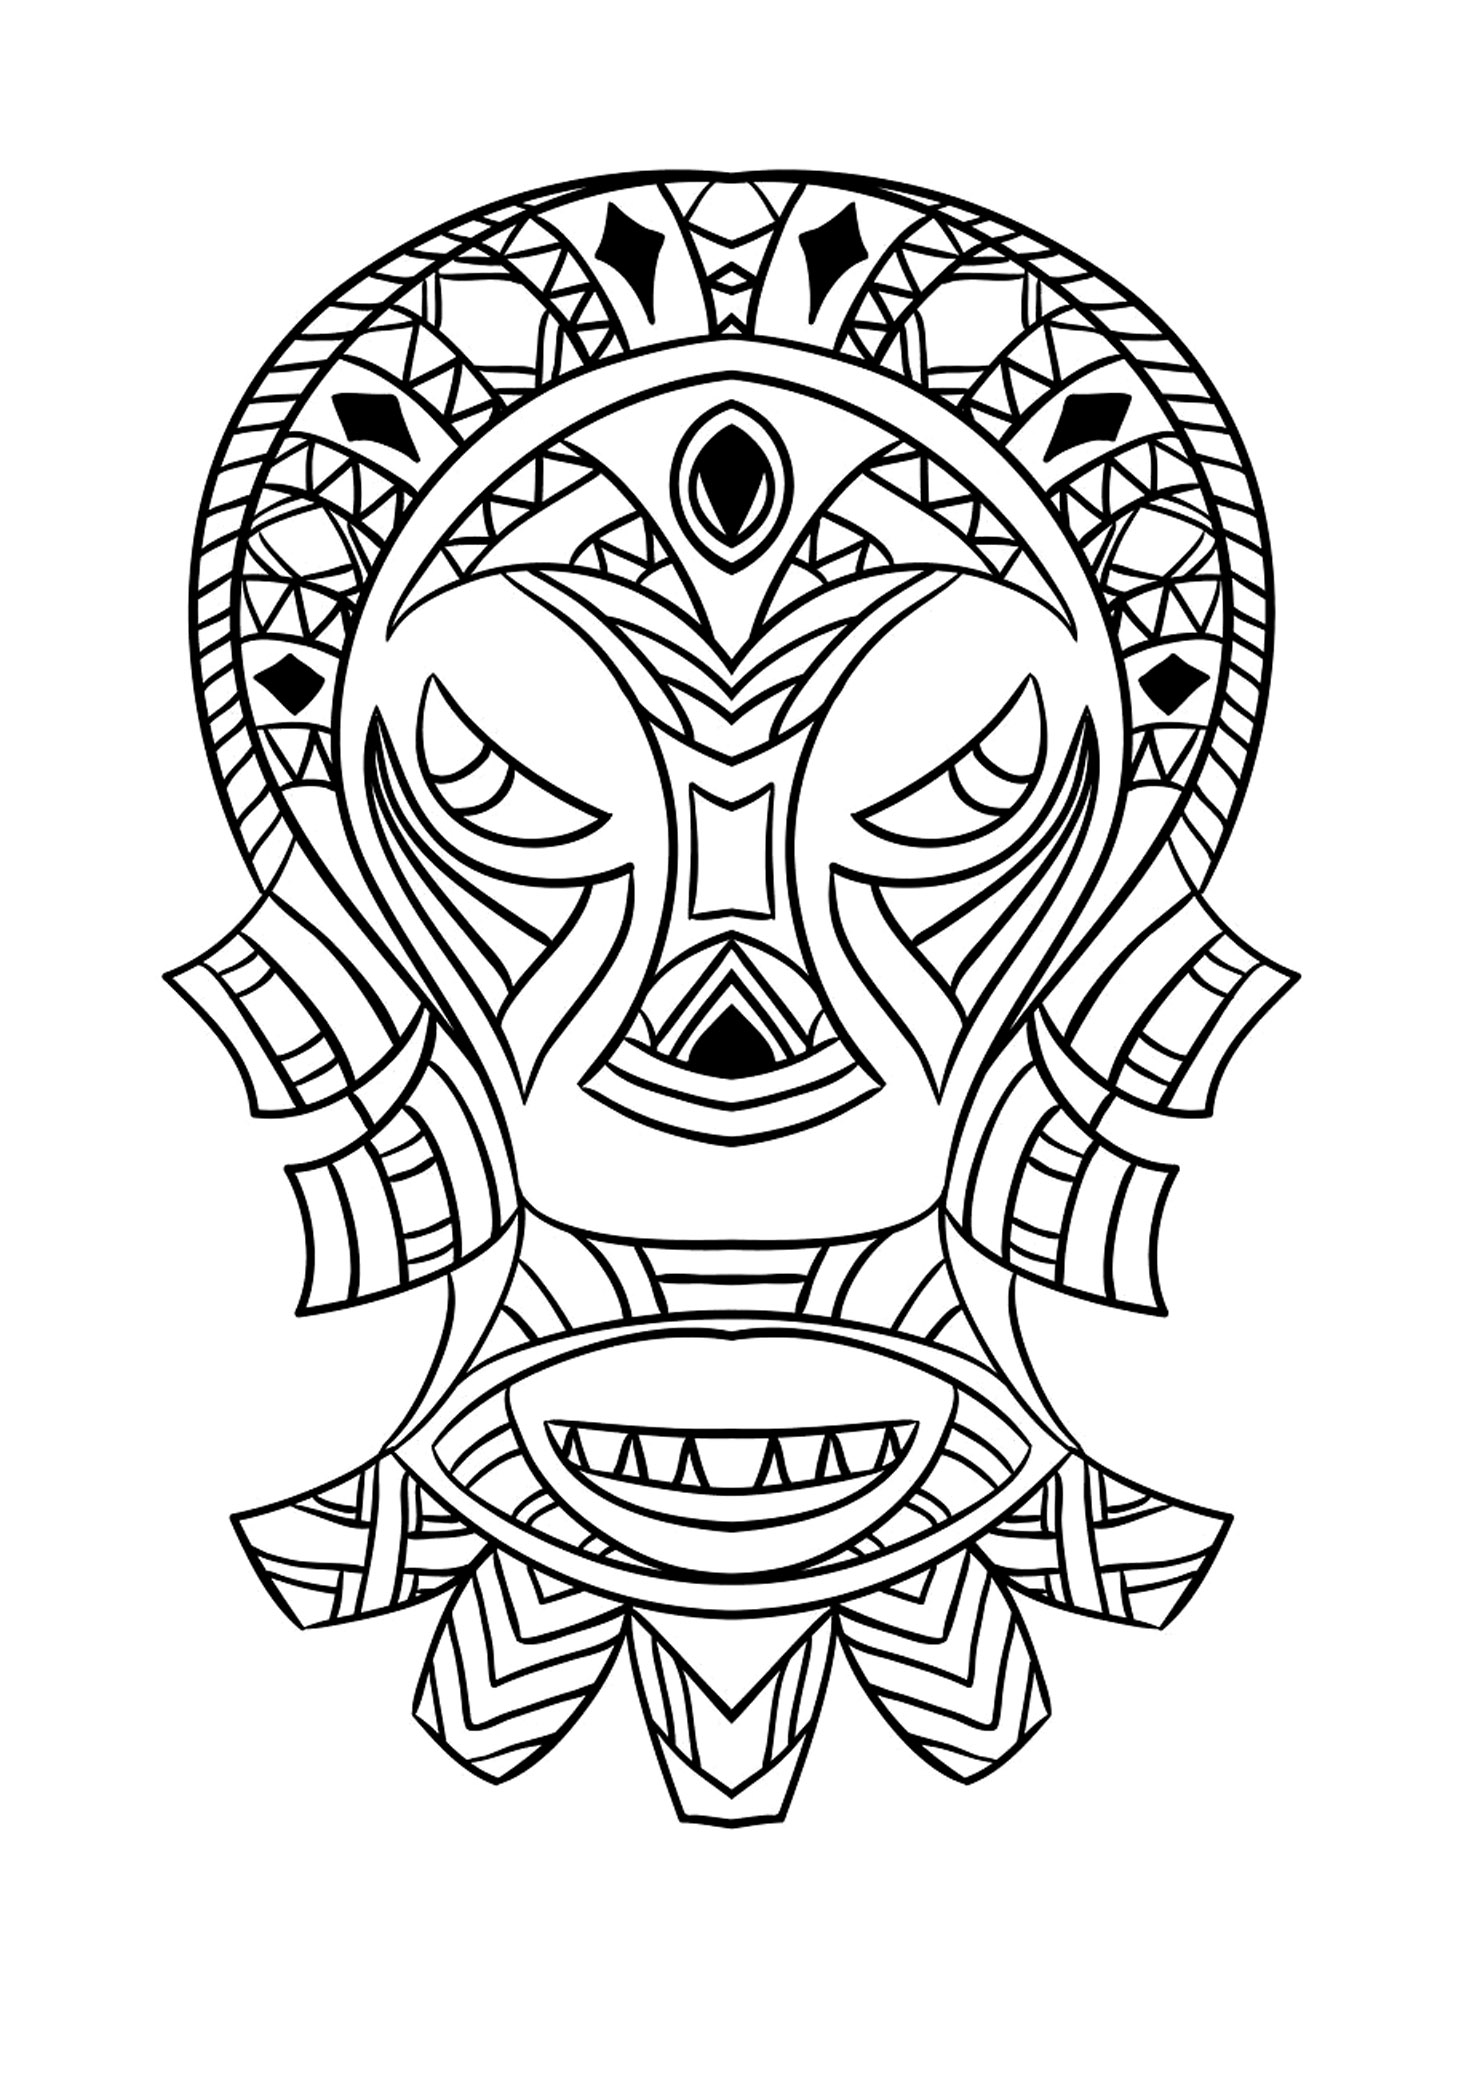 coloring africa africa coloring pages for adults coloring adult africa coloring africa